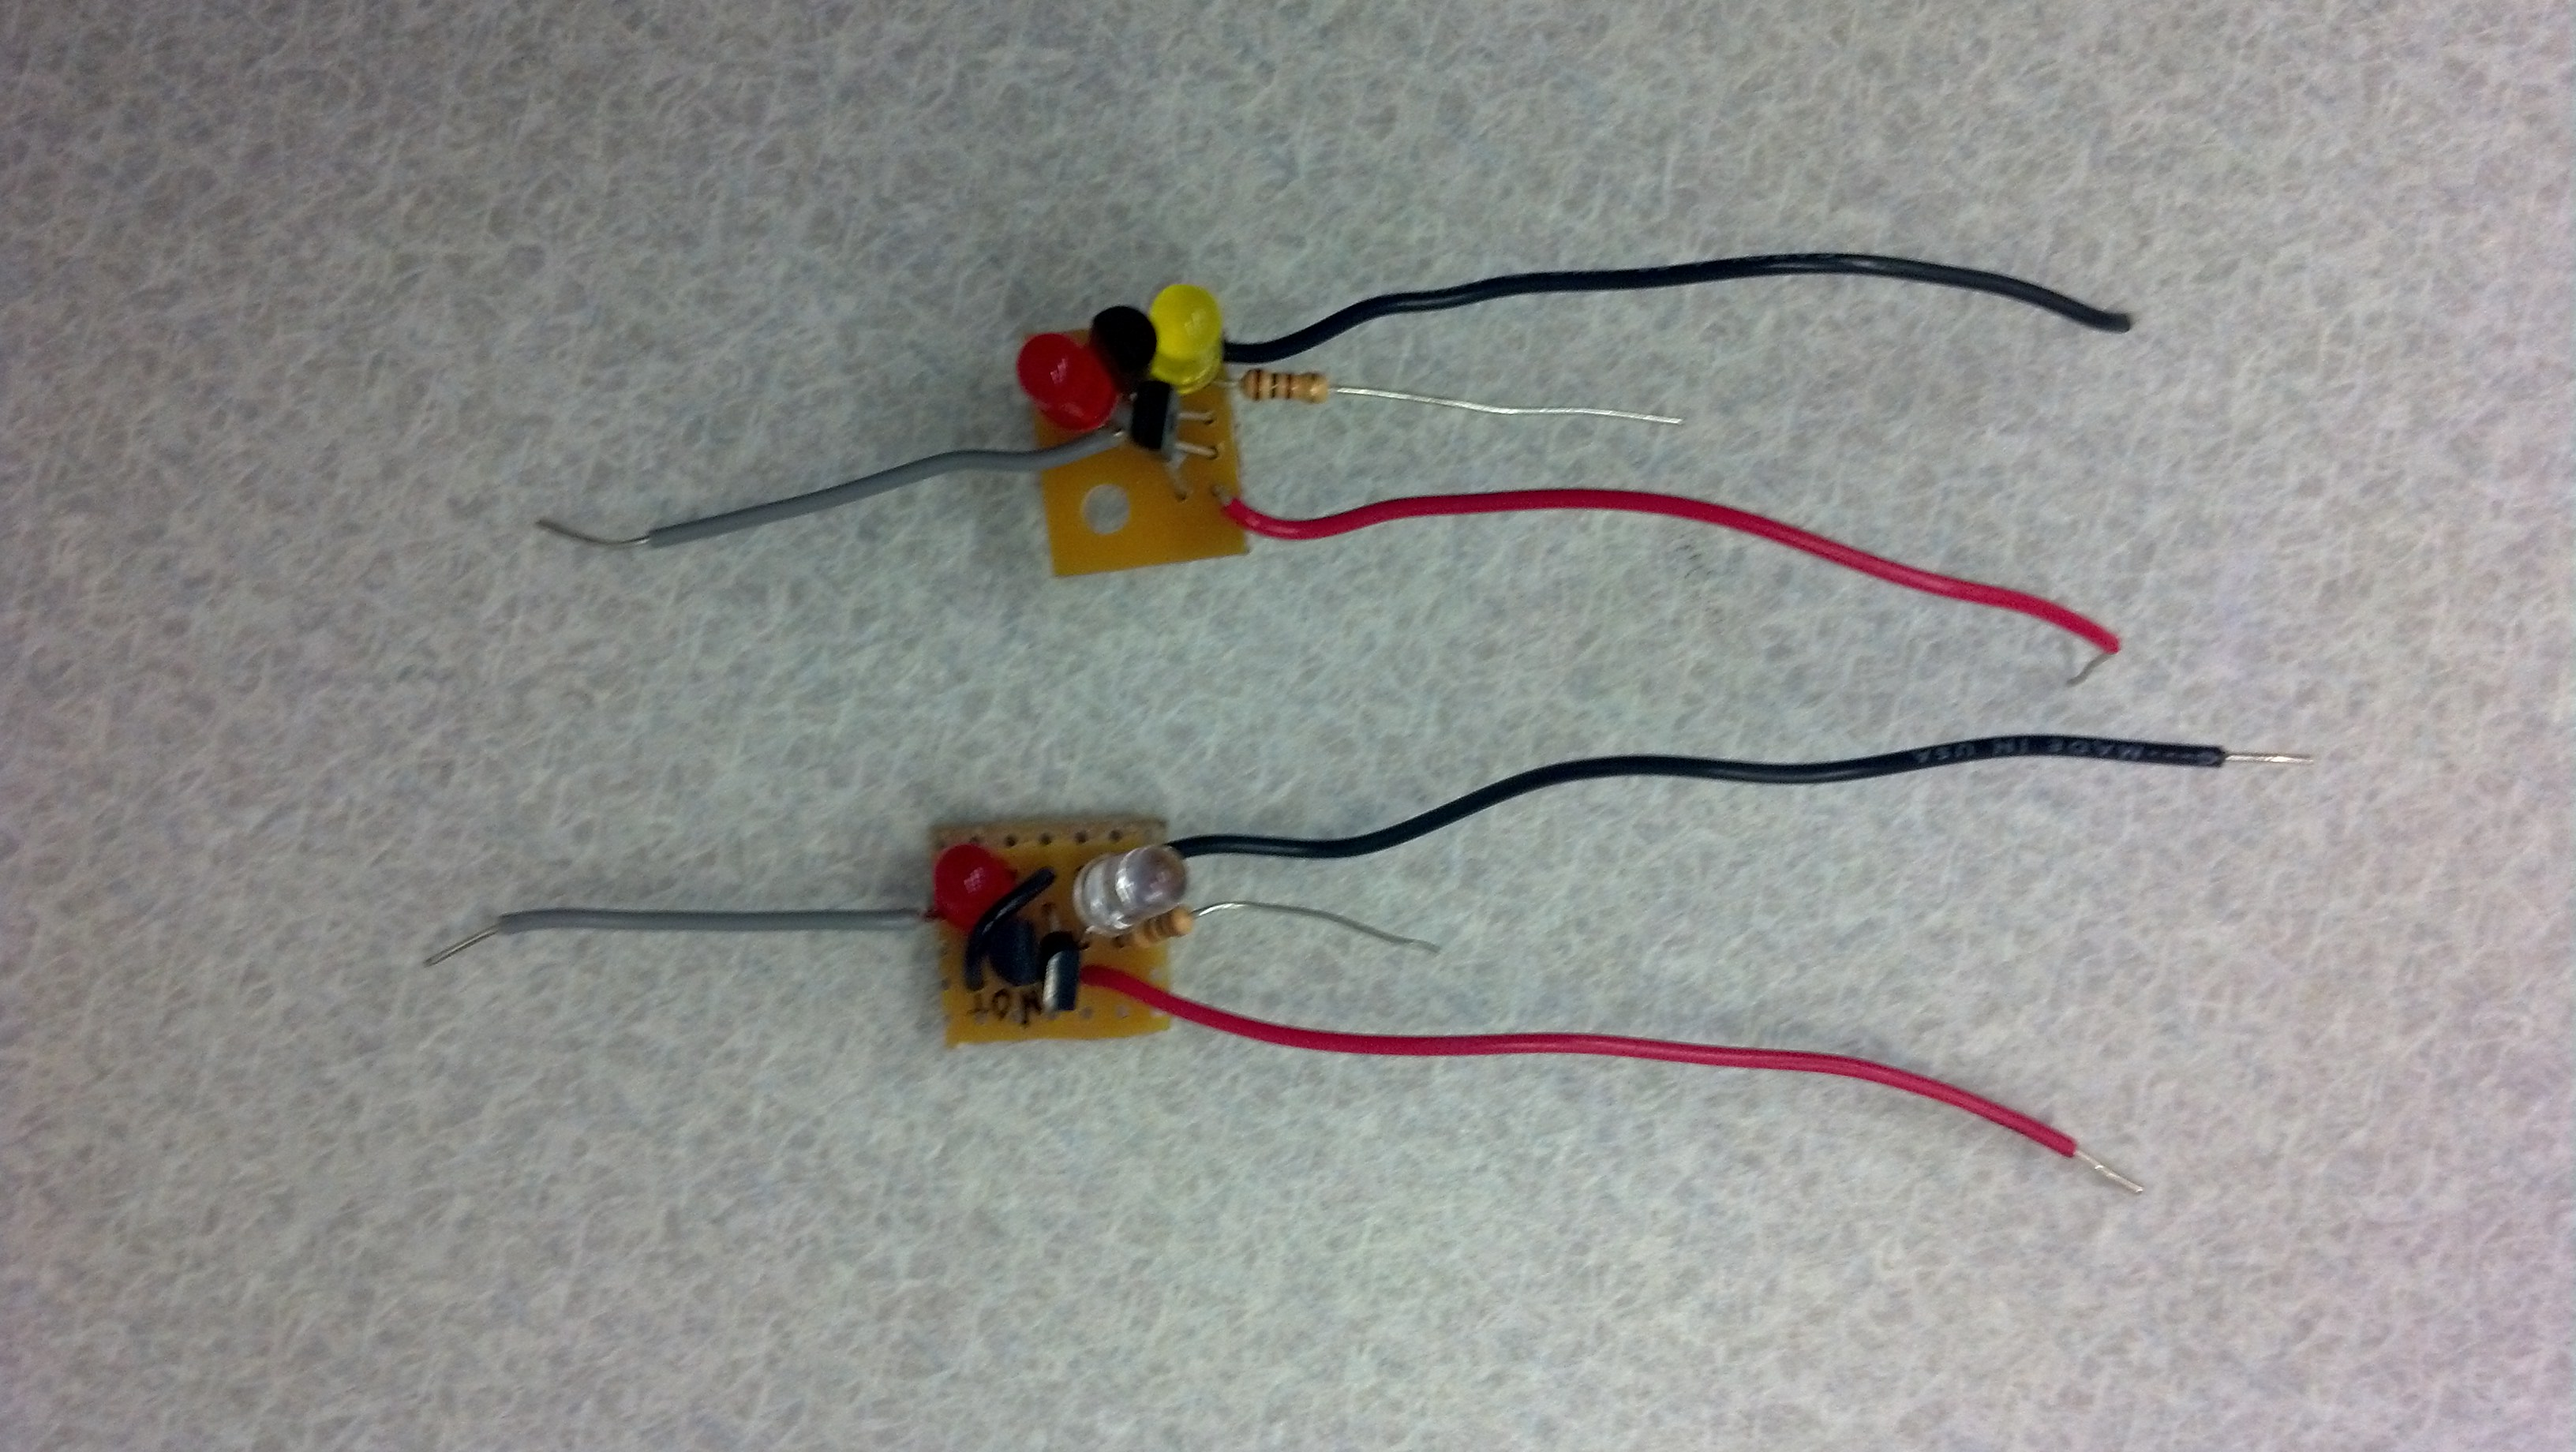 Attractive Light Dependent Resistor Wiki Composition - Electrical ...